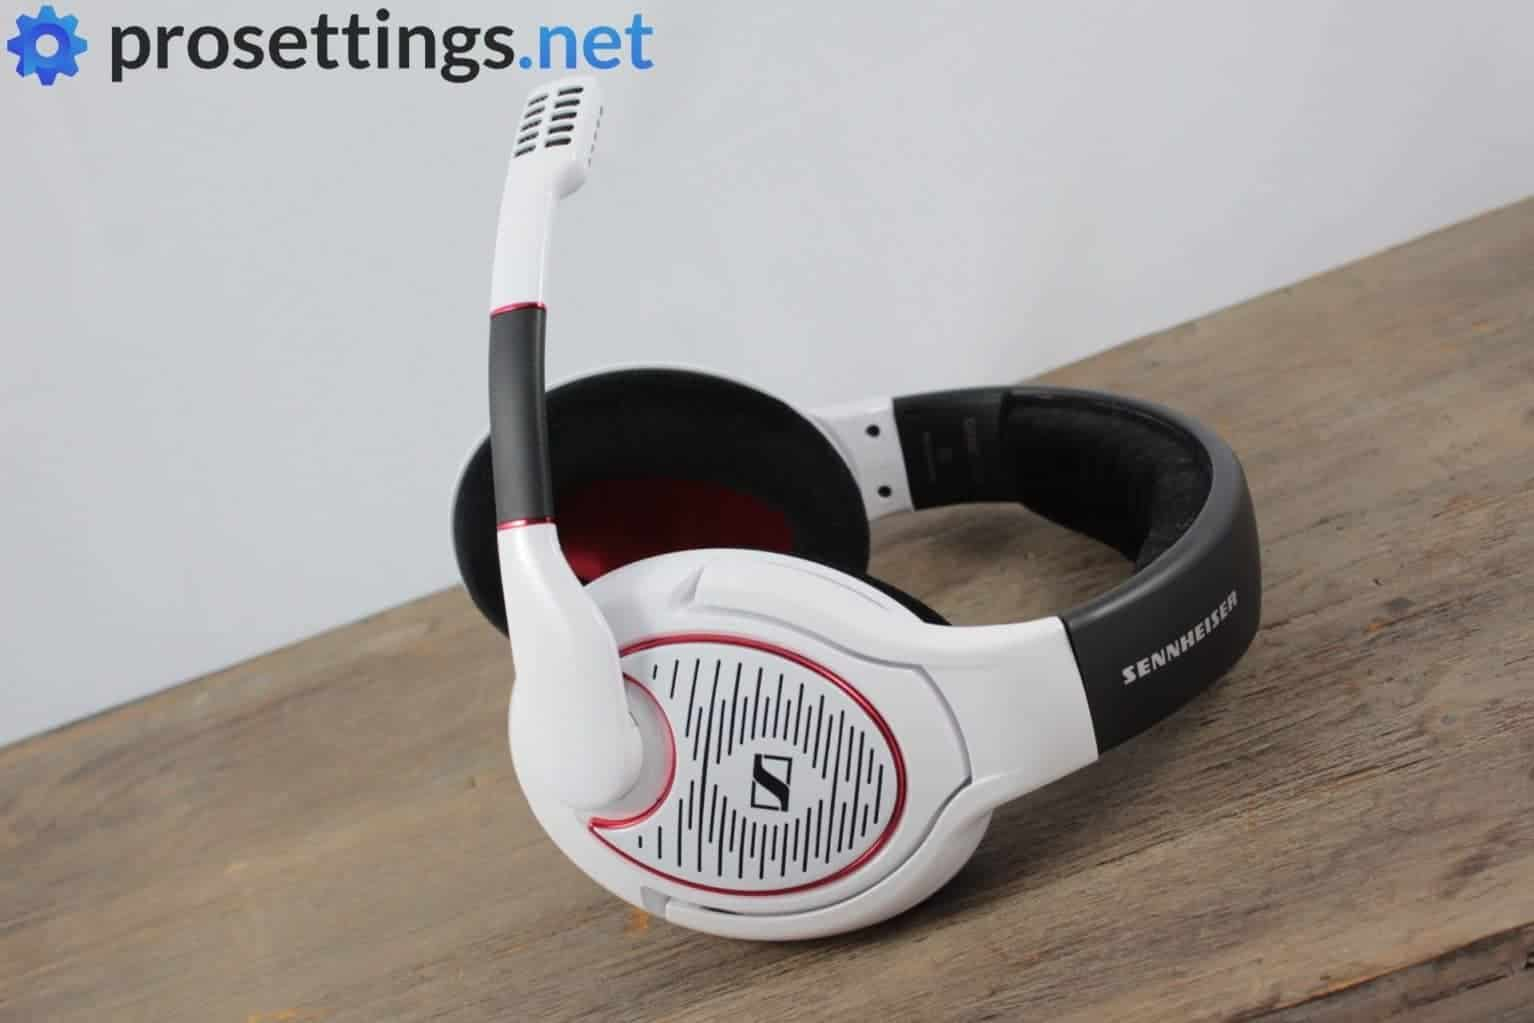 Sennheiser g4me zero csgo betting stephanie bettings kerbel group inc